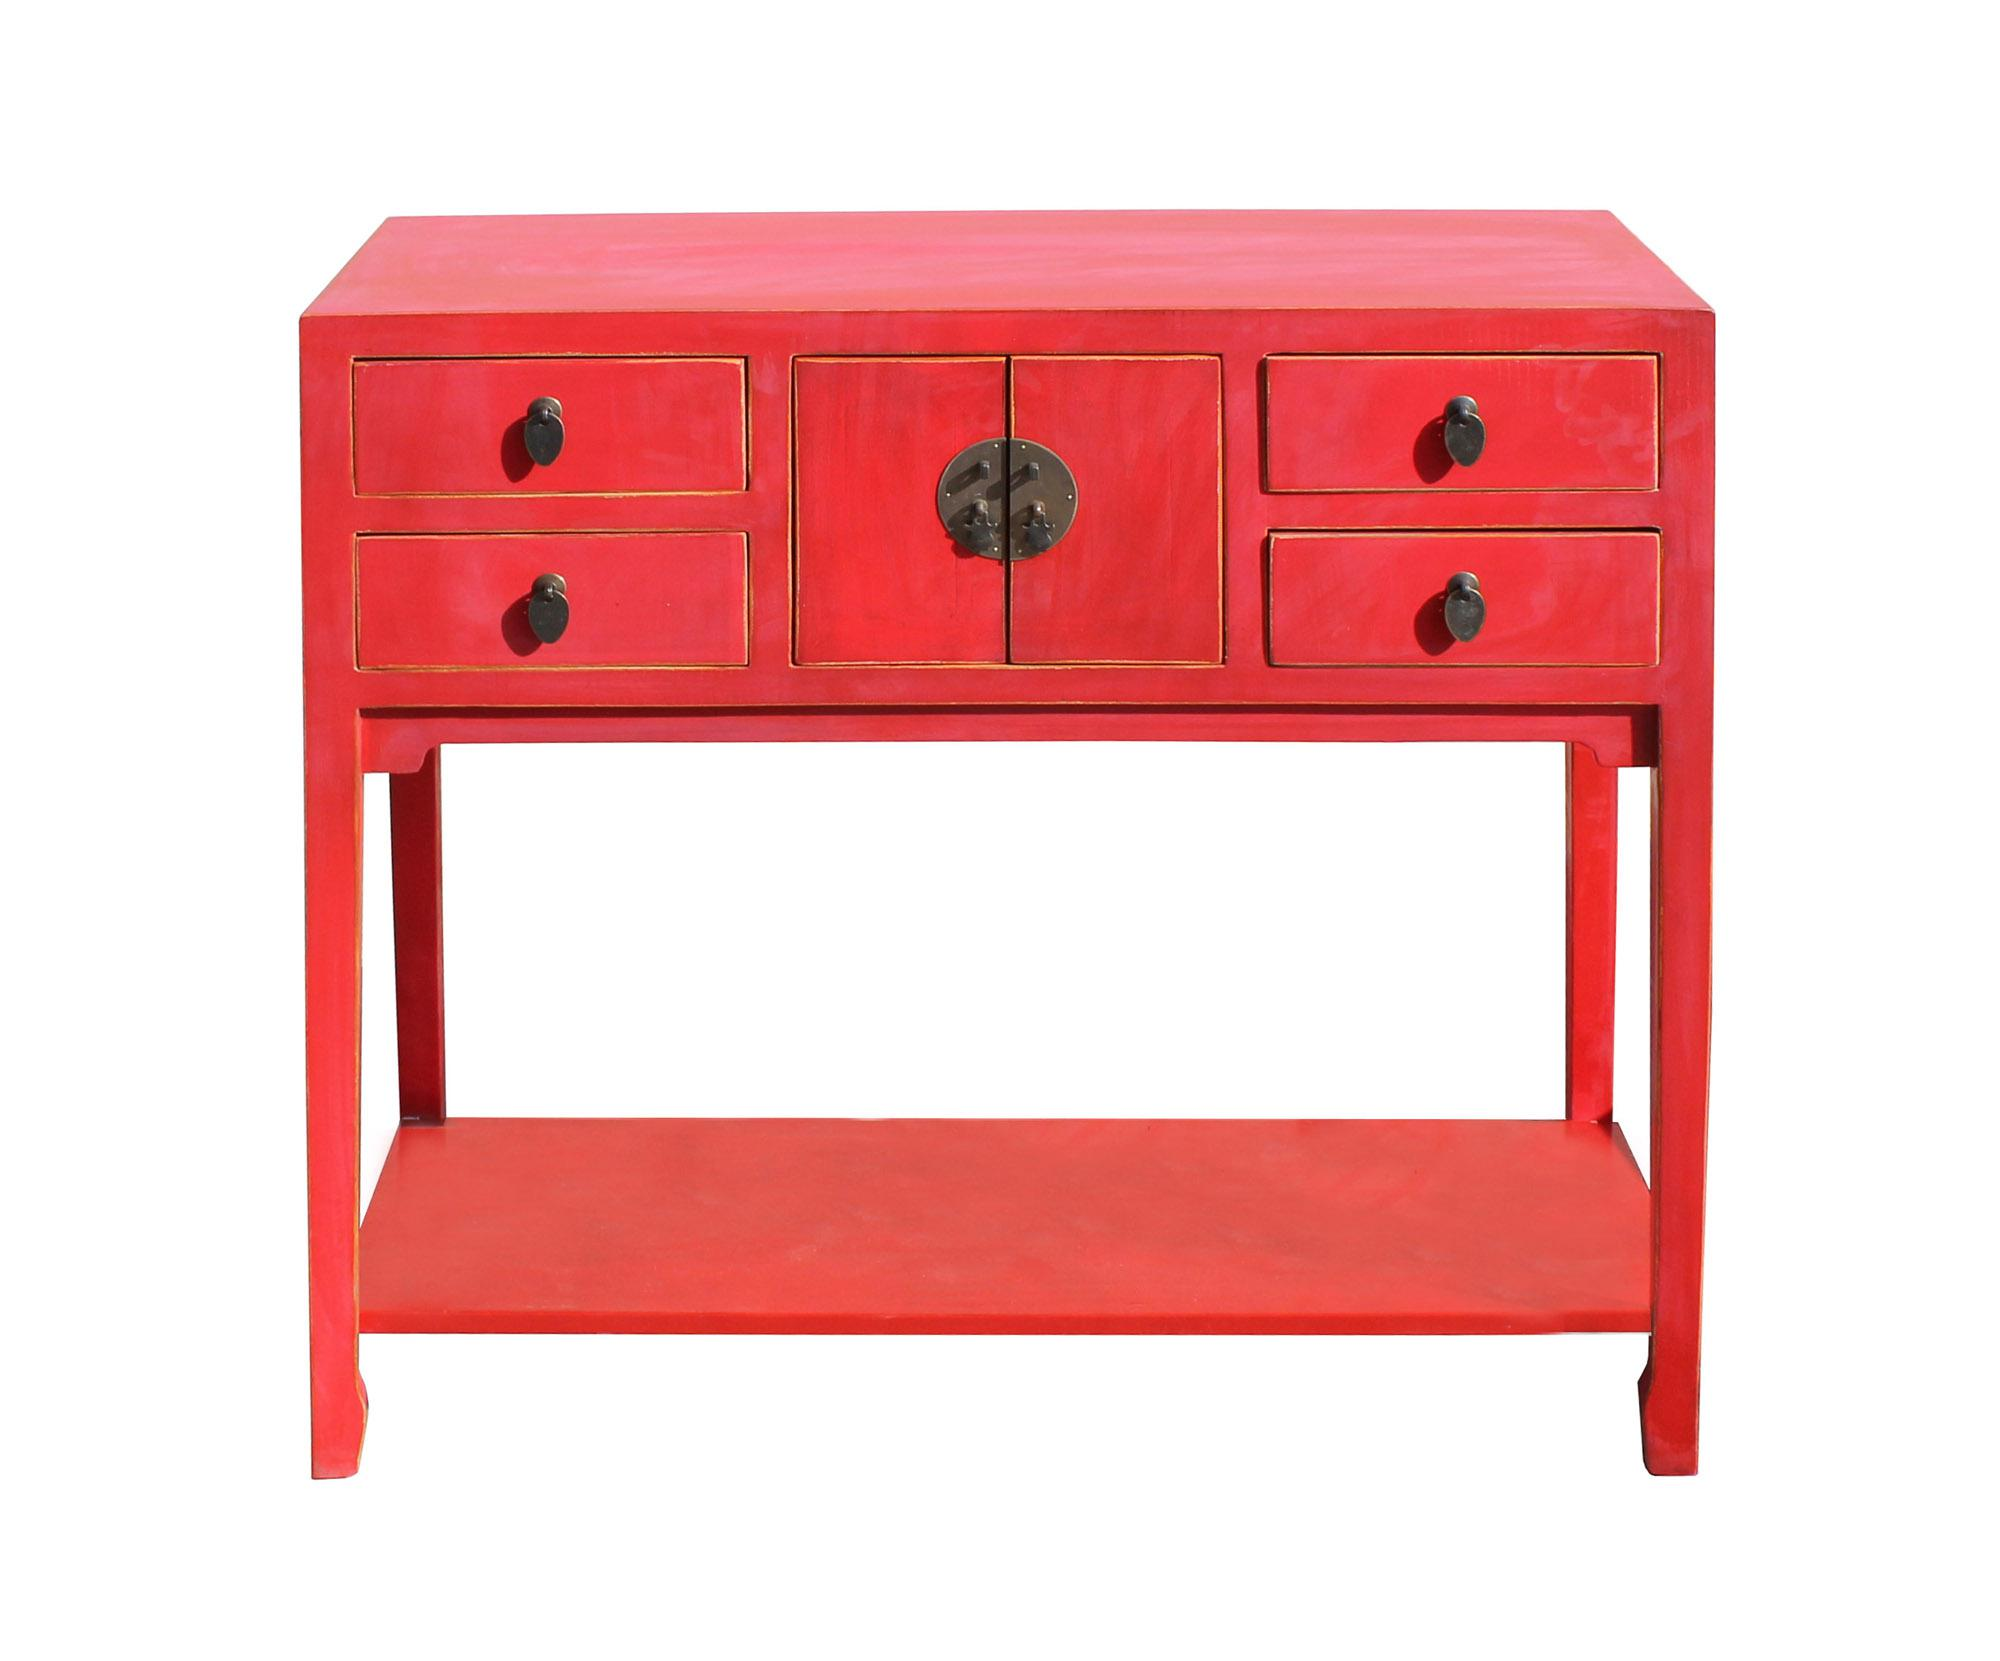 This is a simple rose red color finish wood side foyer table with 4 storage drawers  sc 1 st  Chairish & Chinese Matte Rose Red Wood Plain 4 Drawers Side Table | Chairish